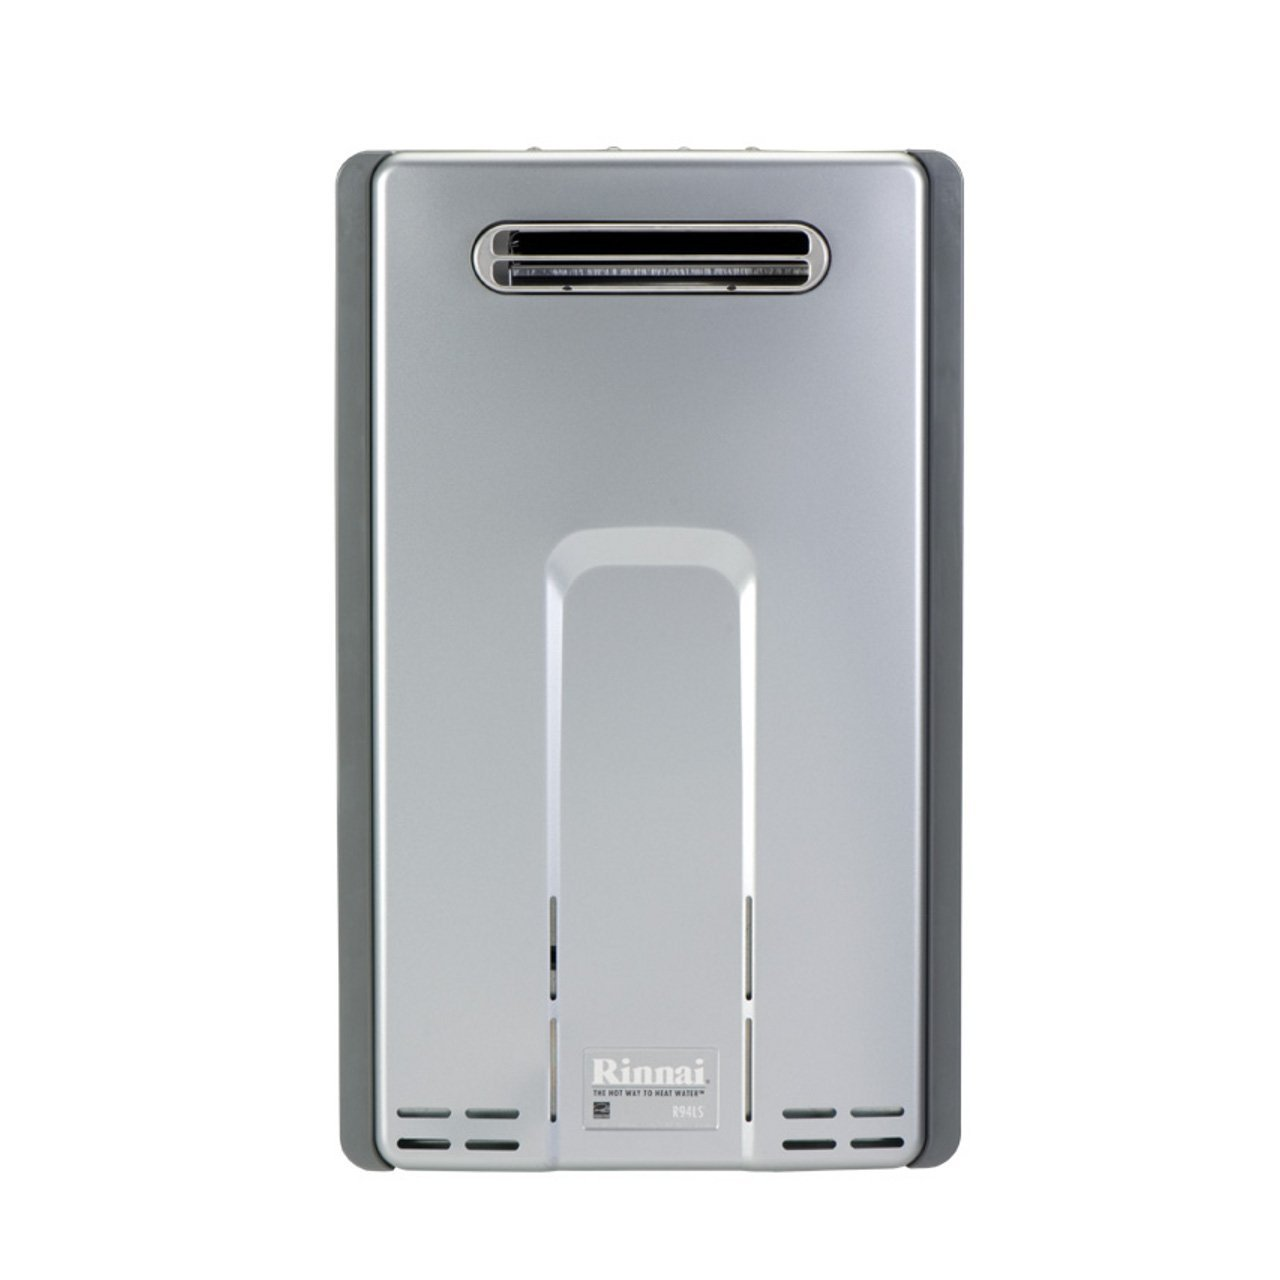 Rinnai RL94eN Gas Tankless Water Heater